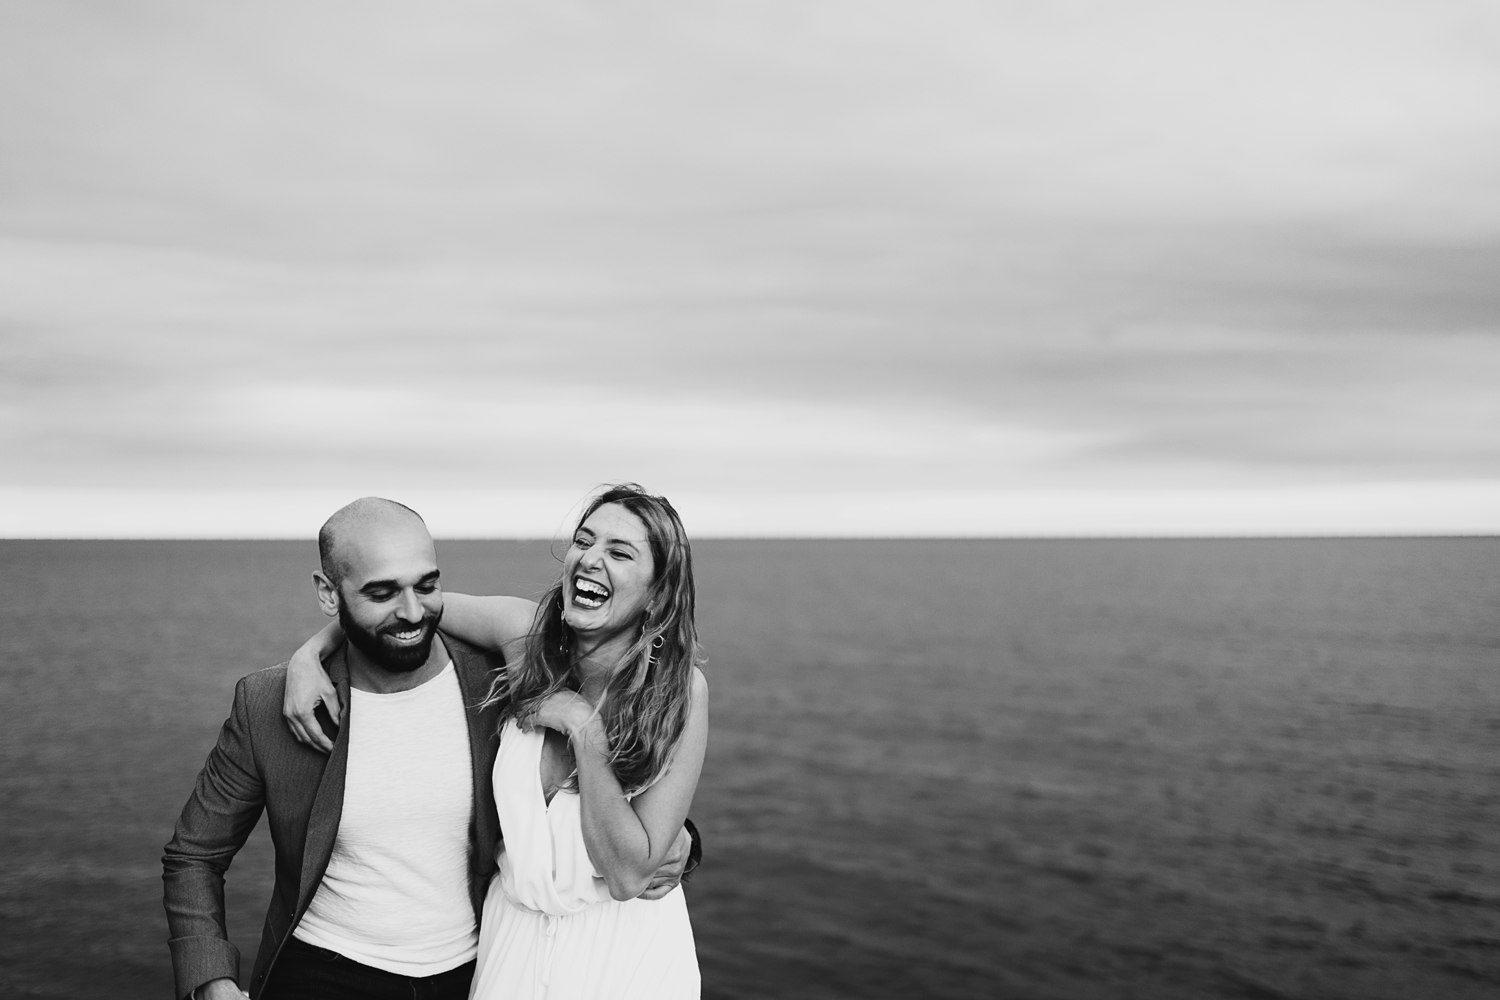 Dudzinski-Cathy-Photographe-Mariage-Bordeaux-Paris